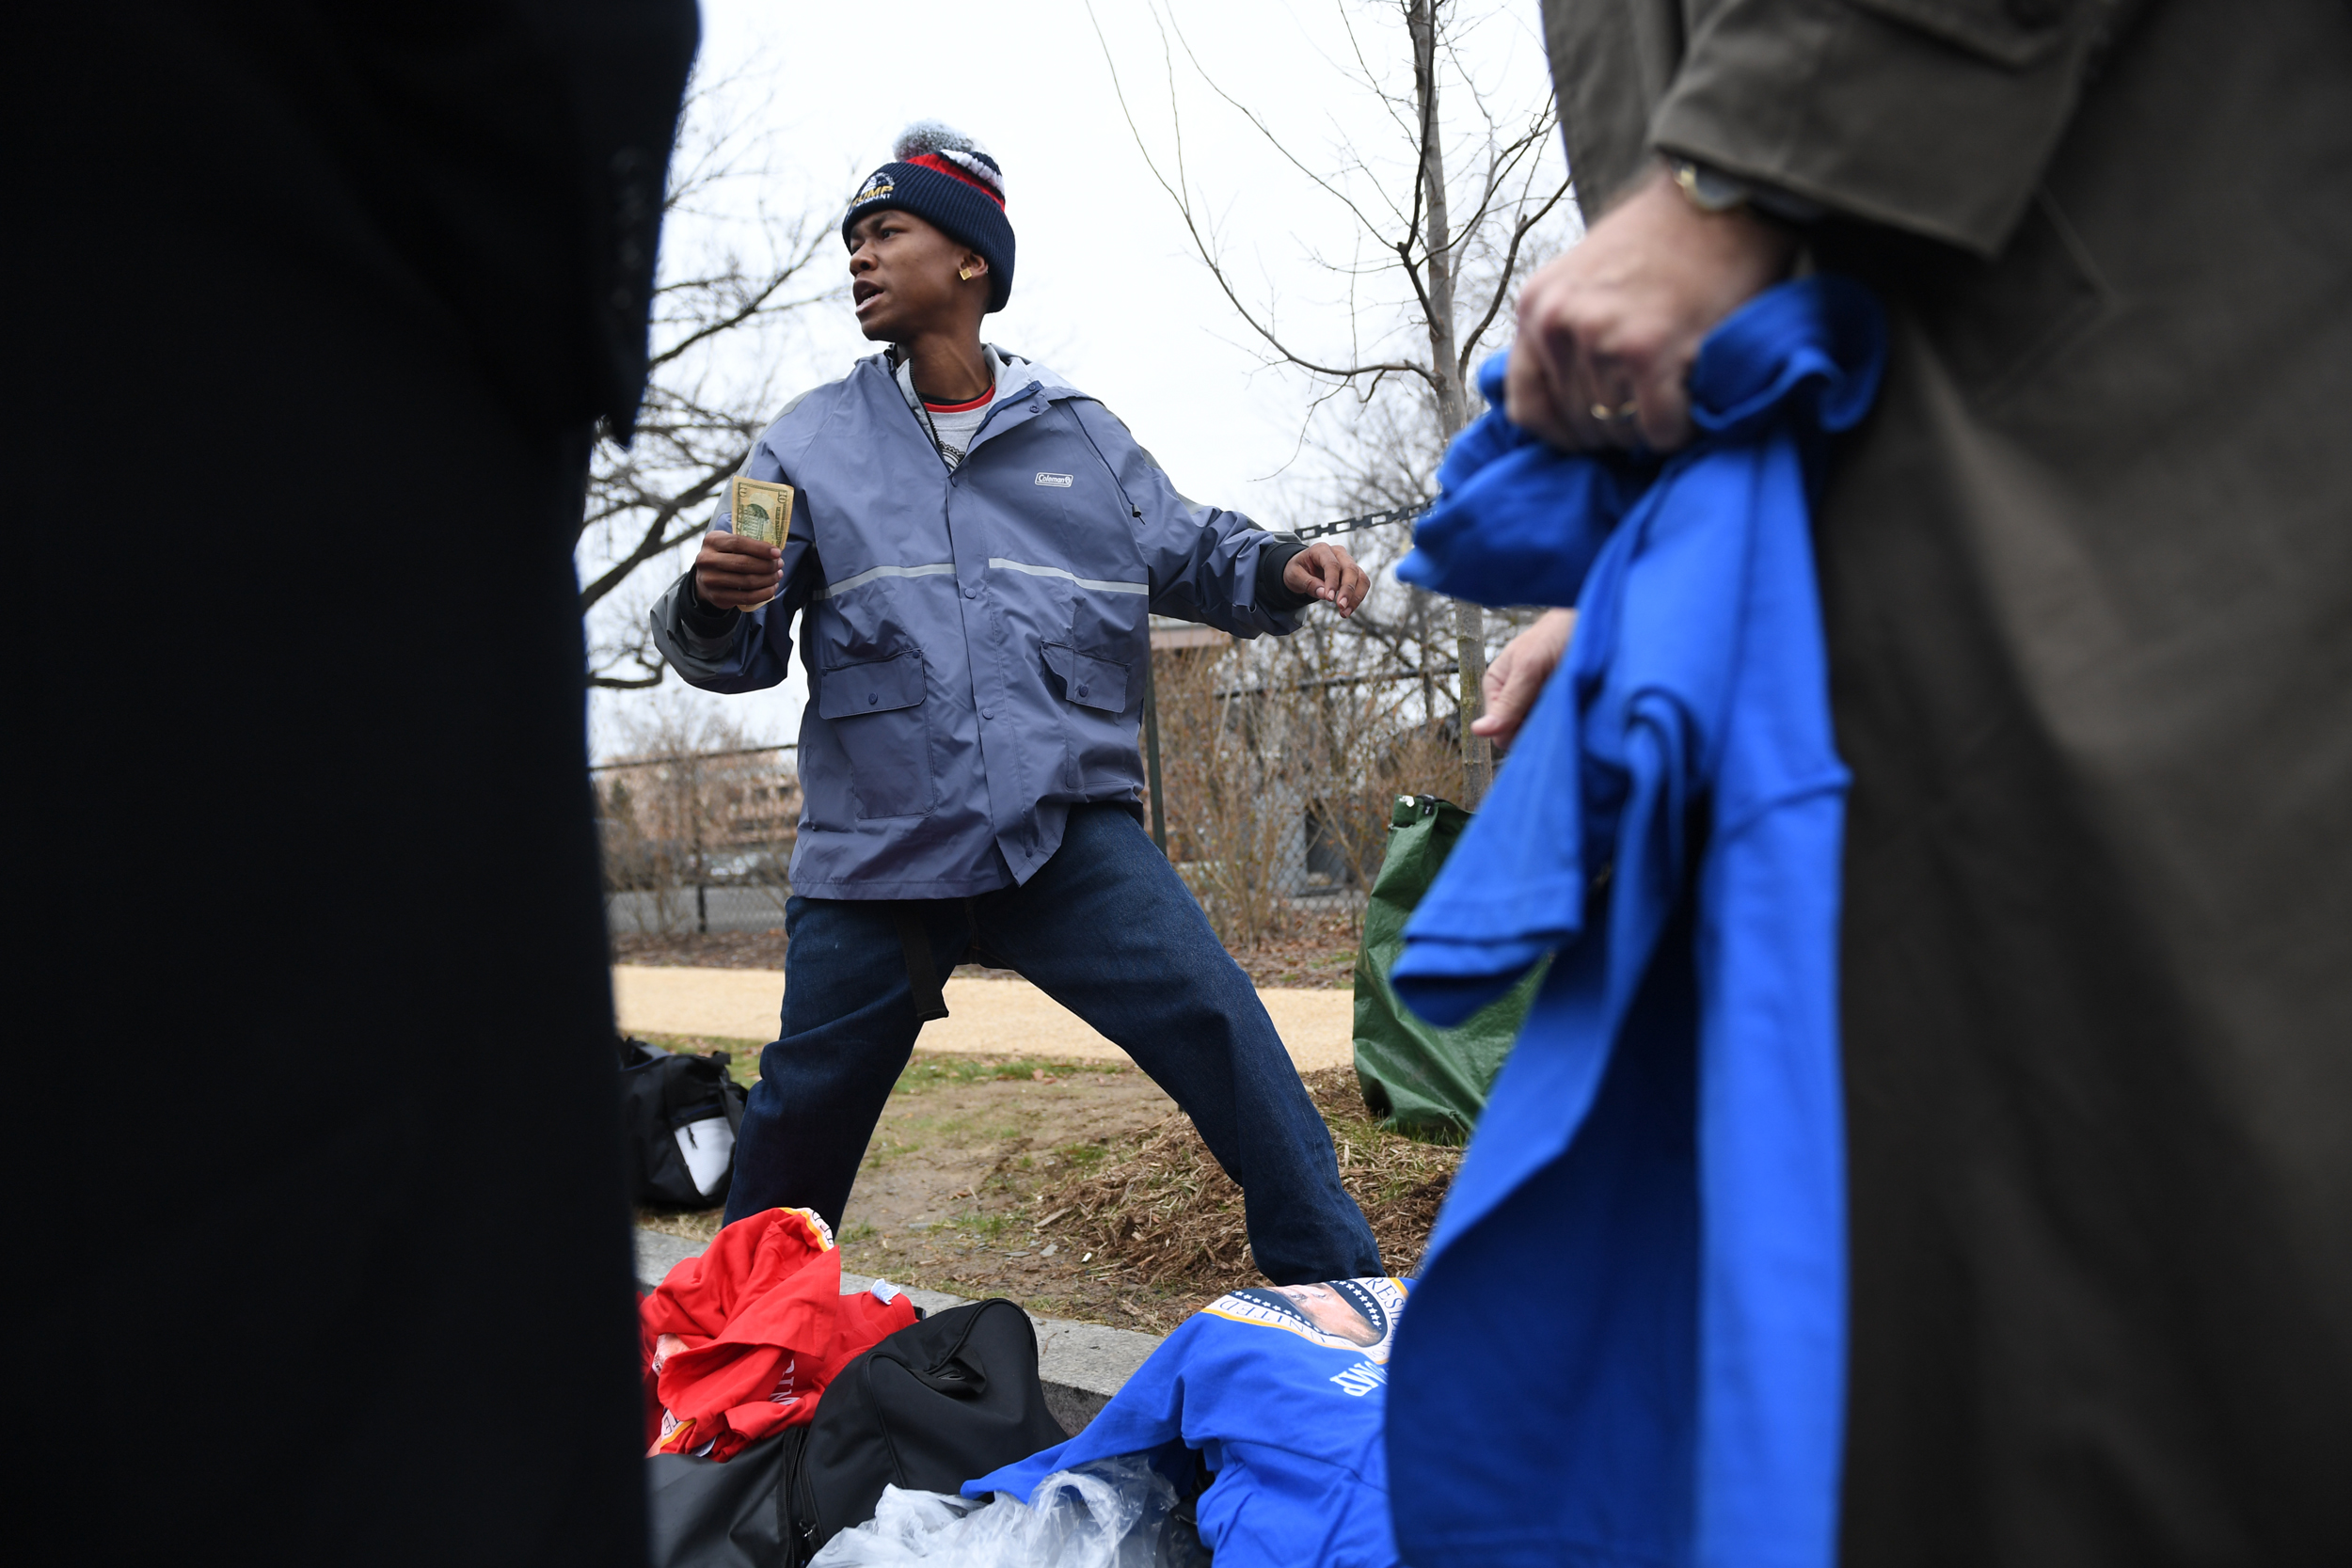 A young vendor makes t-shirts and hat sales to people as they make their way from the National Mall on January 20, 2017: during the inauguration of President Donald Trump January 20, 2017 on the National Mall in Washington D.C. . (Brent Lewis/The Undefeated)